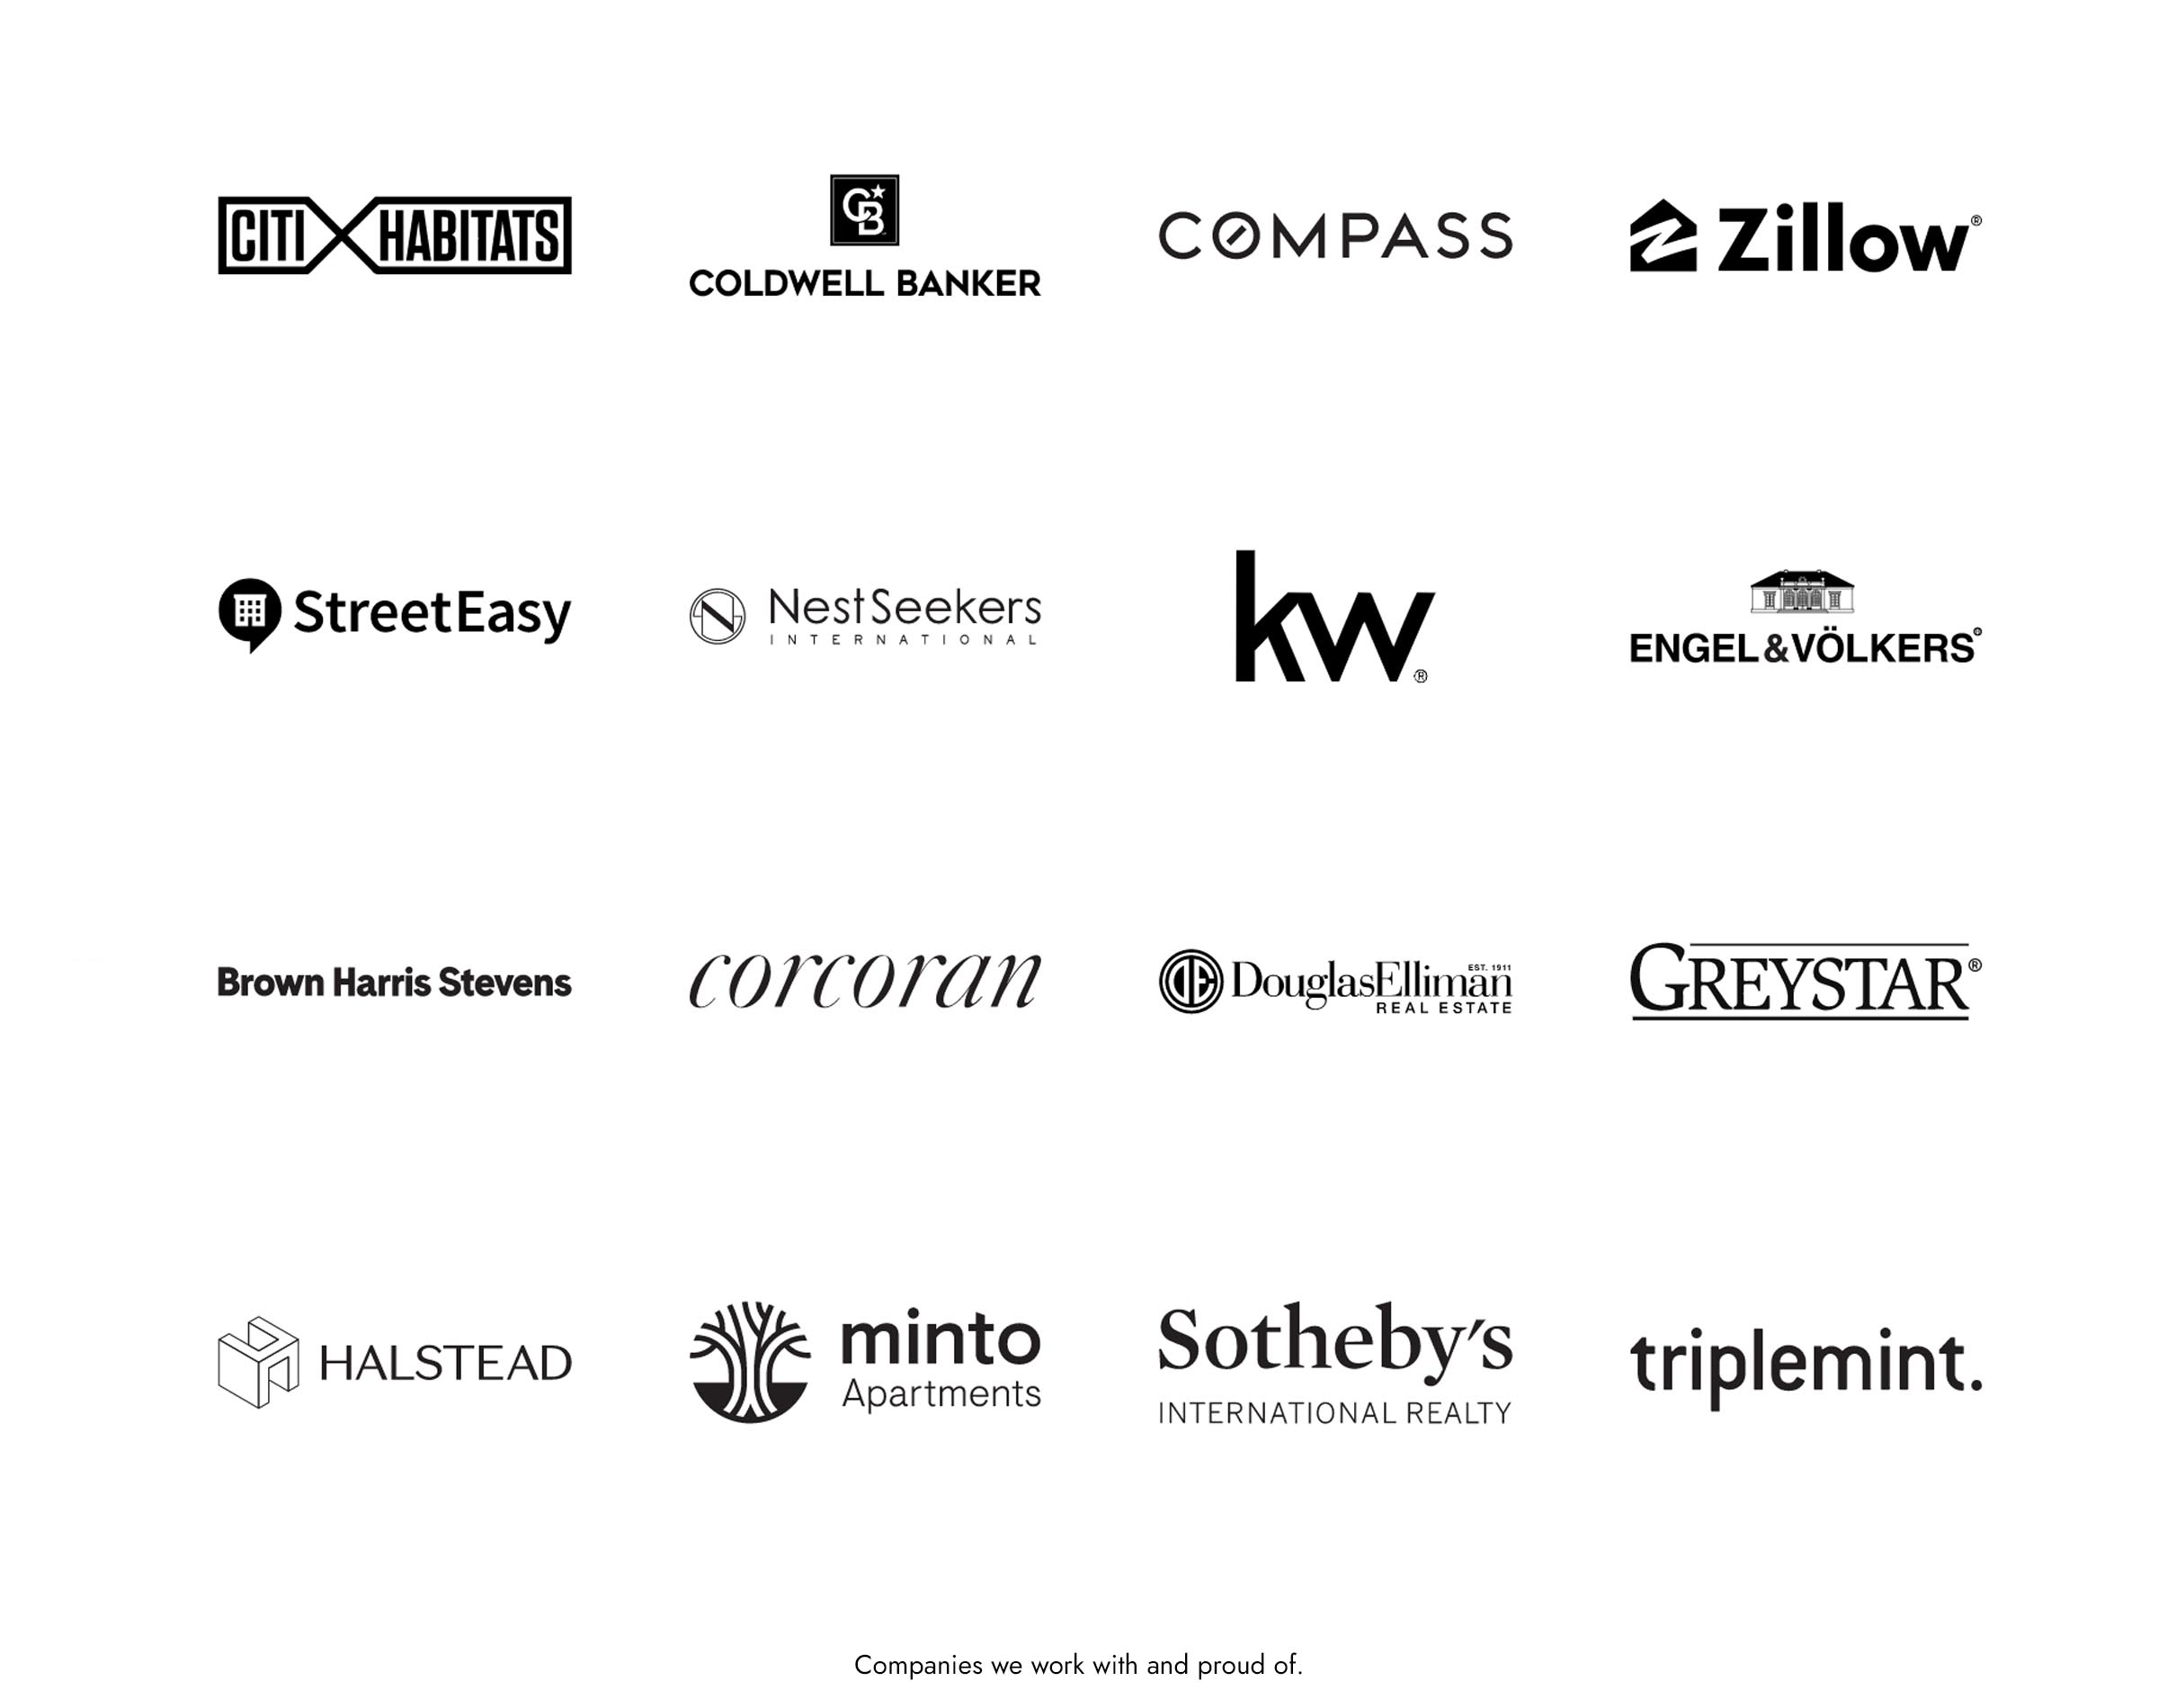 Companies we work with and proud of